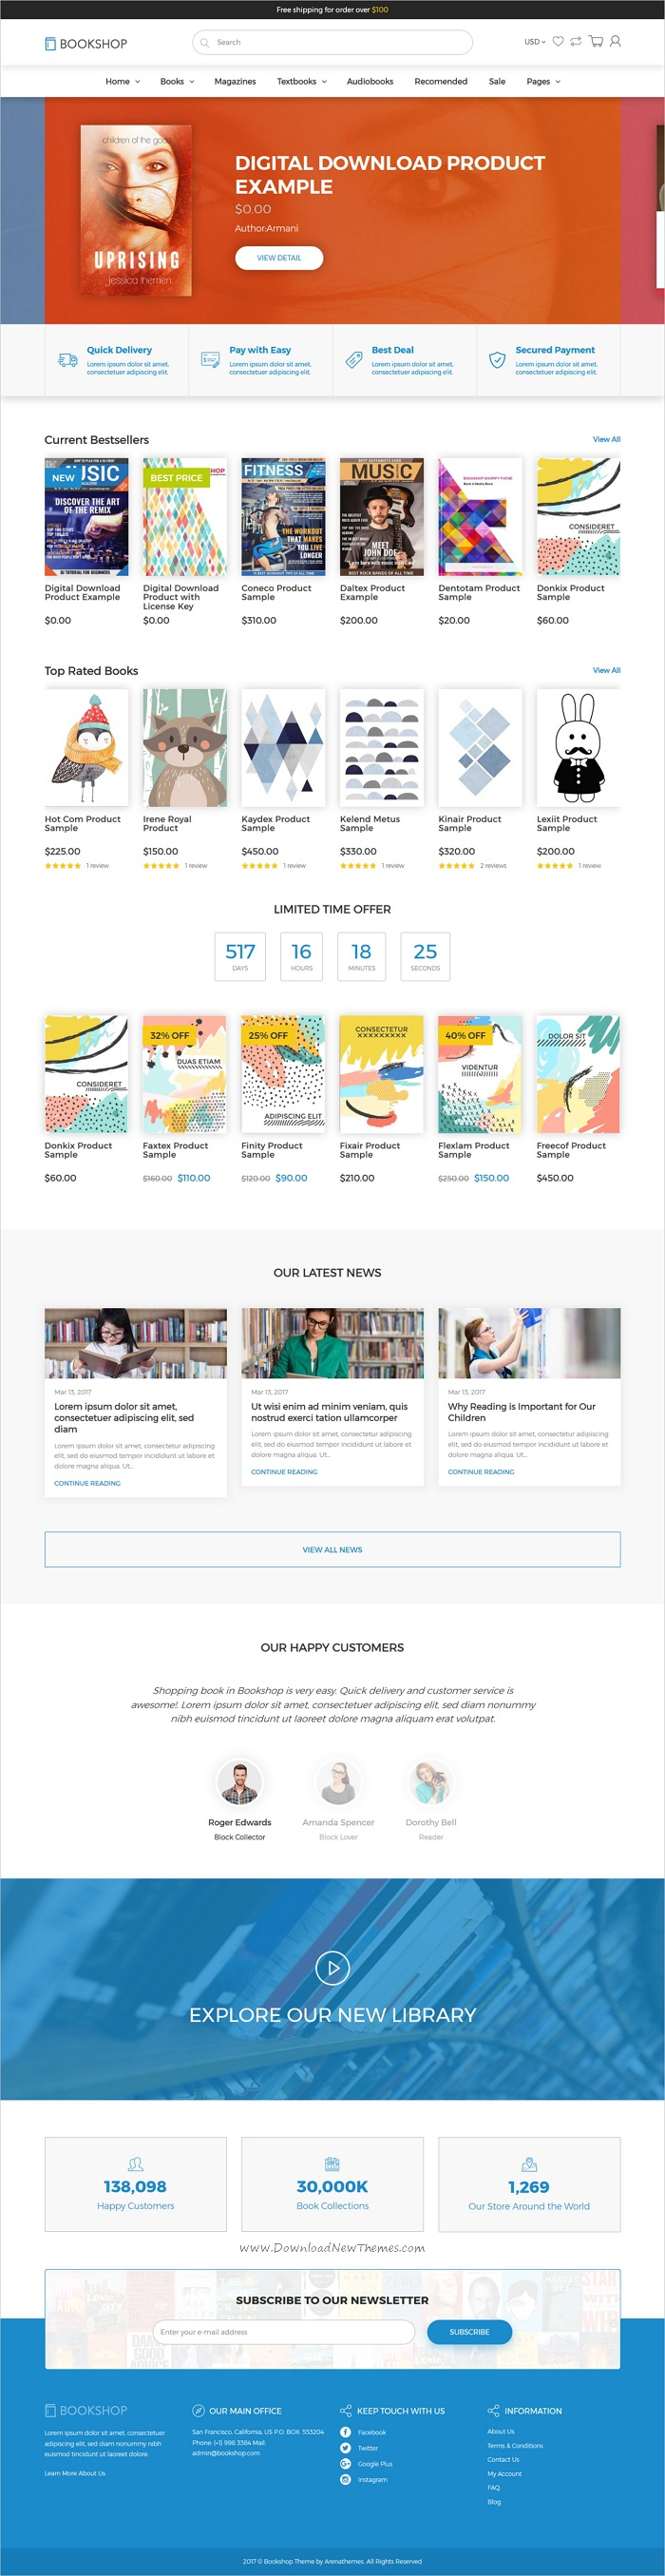 BookShop is clean and modern design 3in1 responsive #Shopify theme for stunning online #book store #eCommerce website download now >> https://themeforest.net/item/shopify-theme-for-books-media-online-store-downloadable-products-bookshop/19832727?ref=Datasata